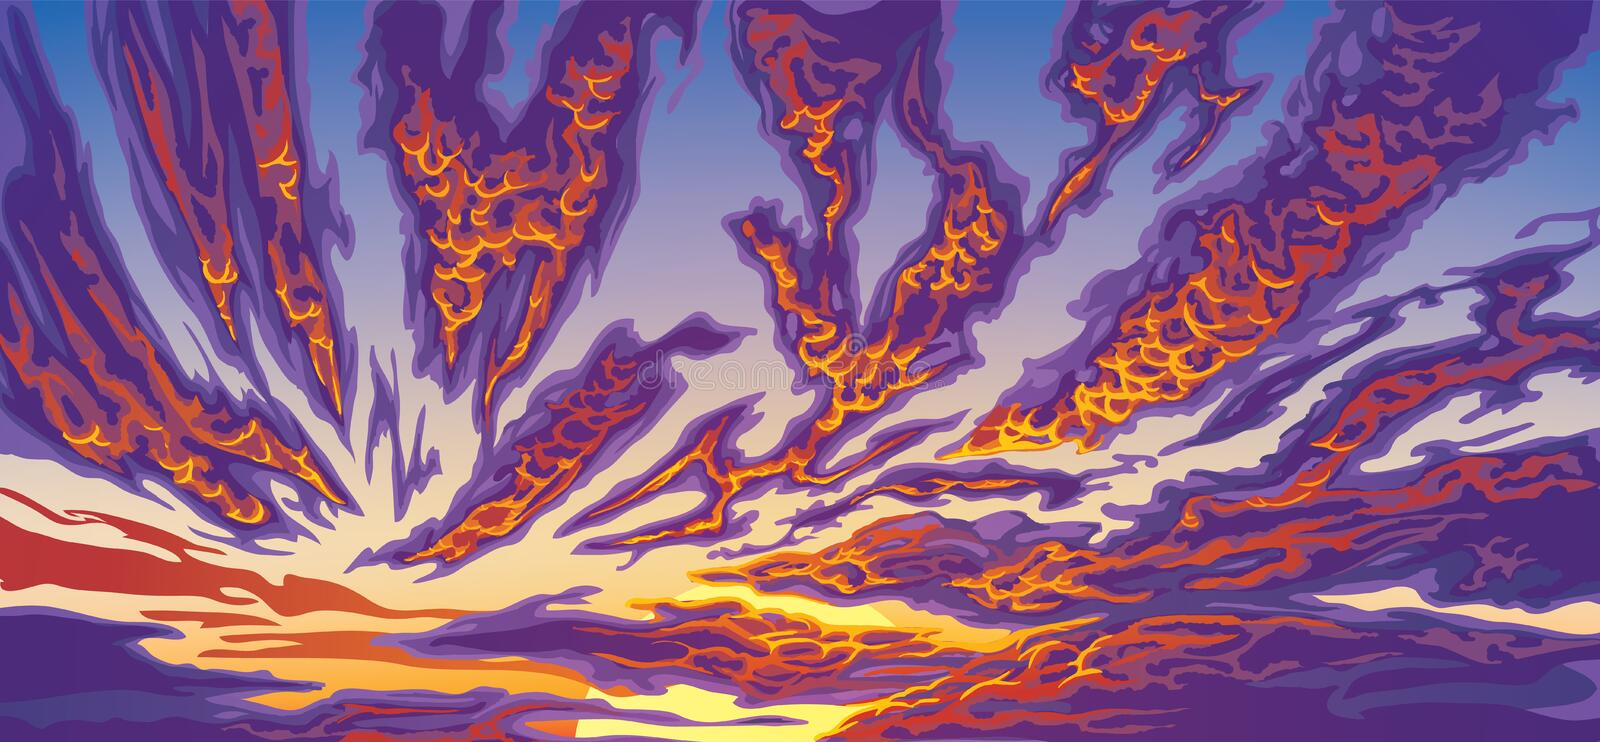 Background with clouds royalty free illustration